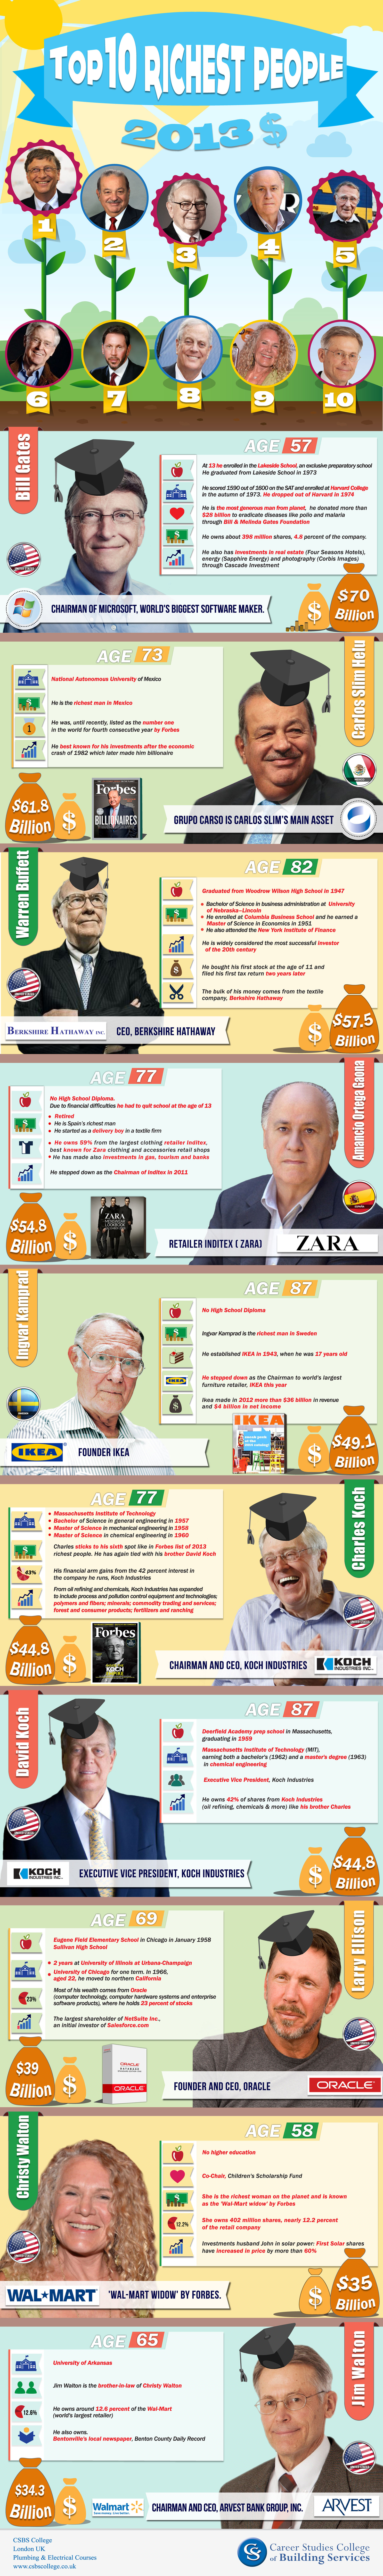 The richest people in the world